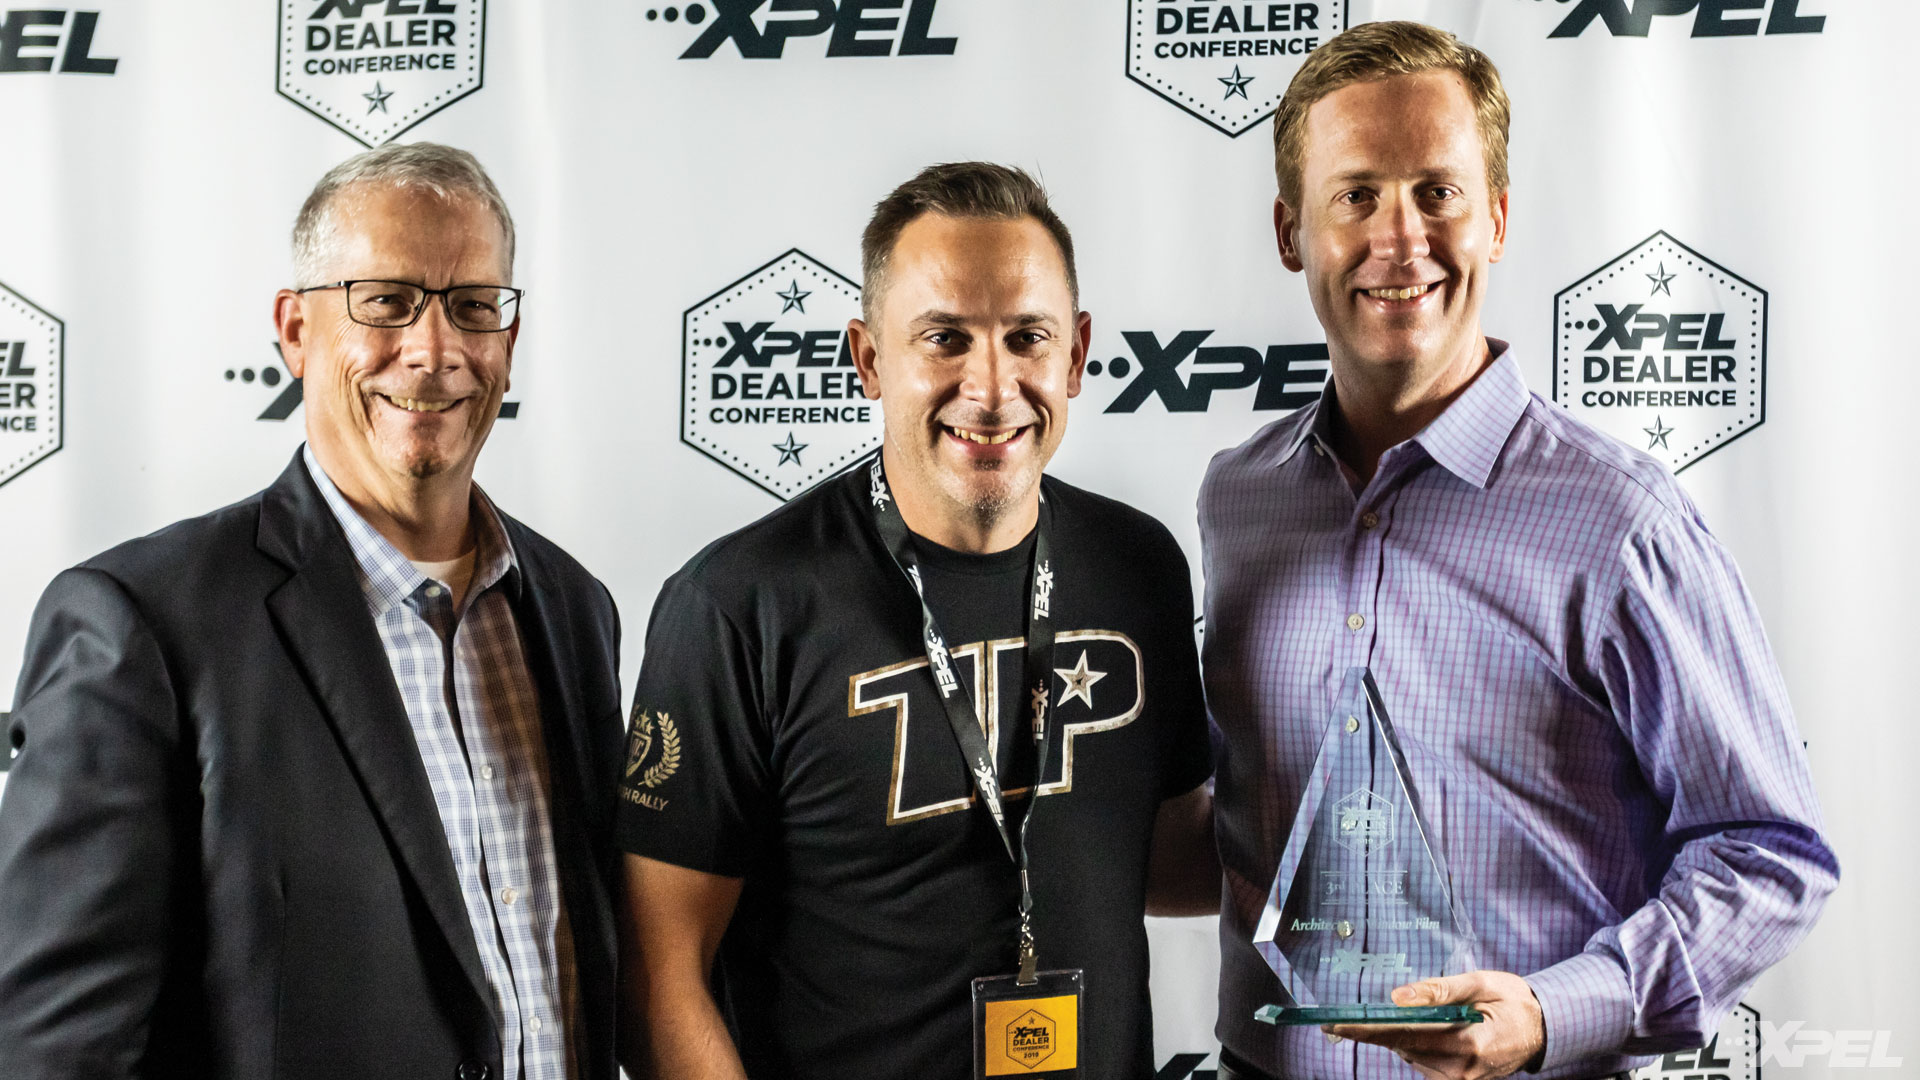 XPEL Dealer Conference 3rd Place Window Film / Window Tint Winner: Rob Ruska